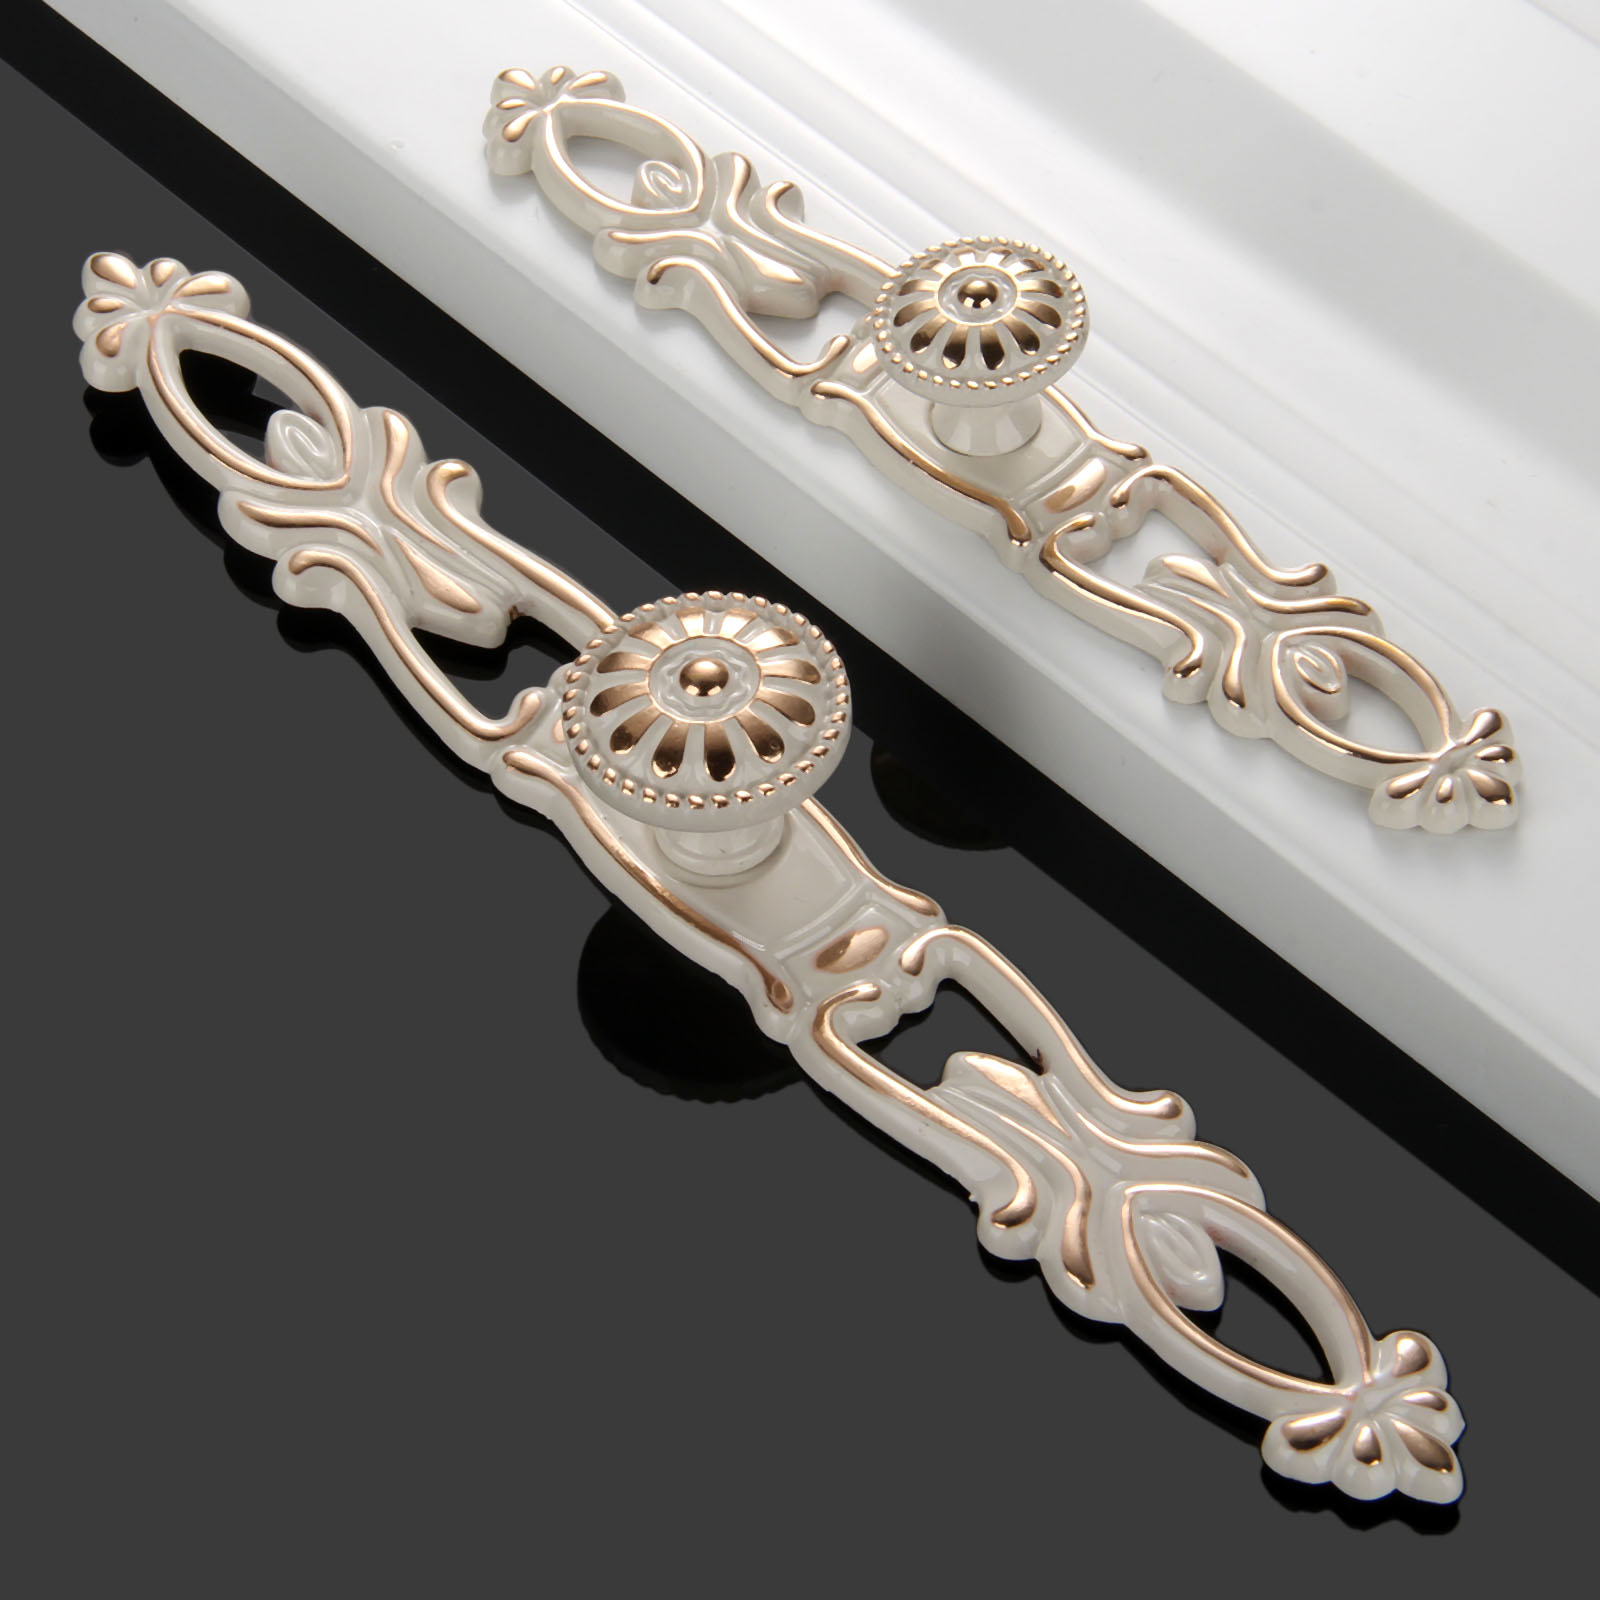 1Pc Furniture Handles Cabinet Knobs and Handles Zinc Alloy Door Knobs Cupboard Drawer Wardrobe Pull Handles Furniture Decoration 10 inch long cabinet handles and knobs drawer pull for furniture and cupboard simple wardrobe handle zinc alloy door handle